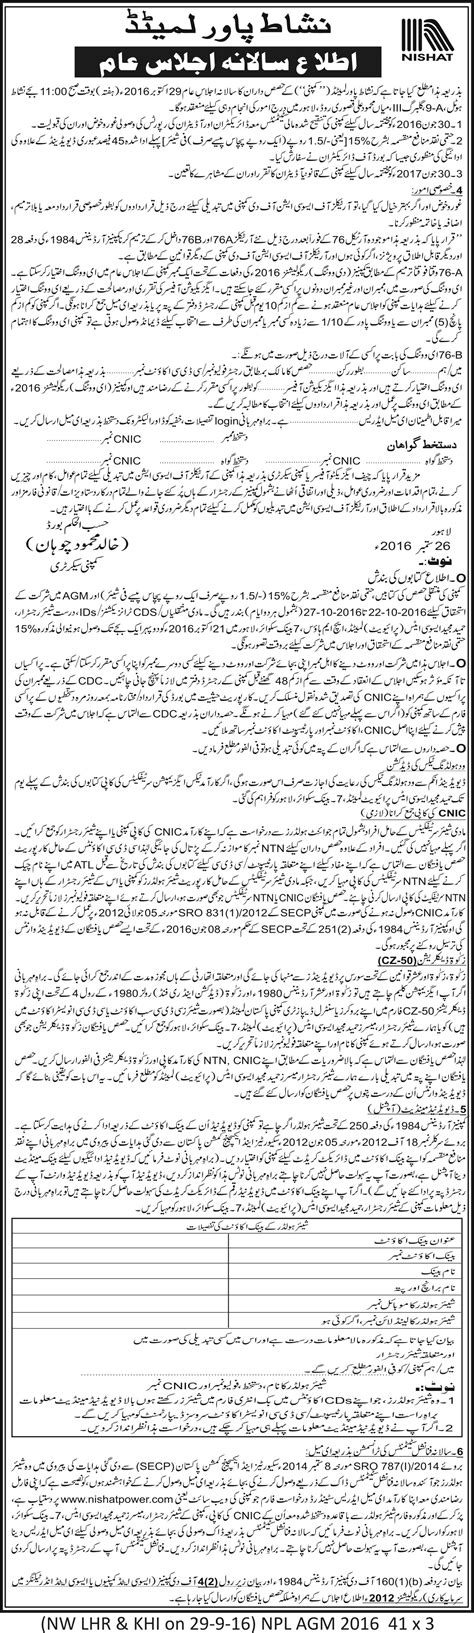 pattern in chief meaning in urdu nishat power governance